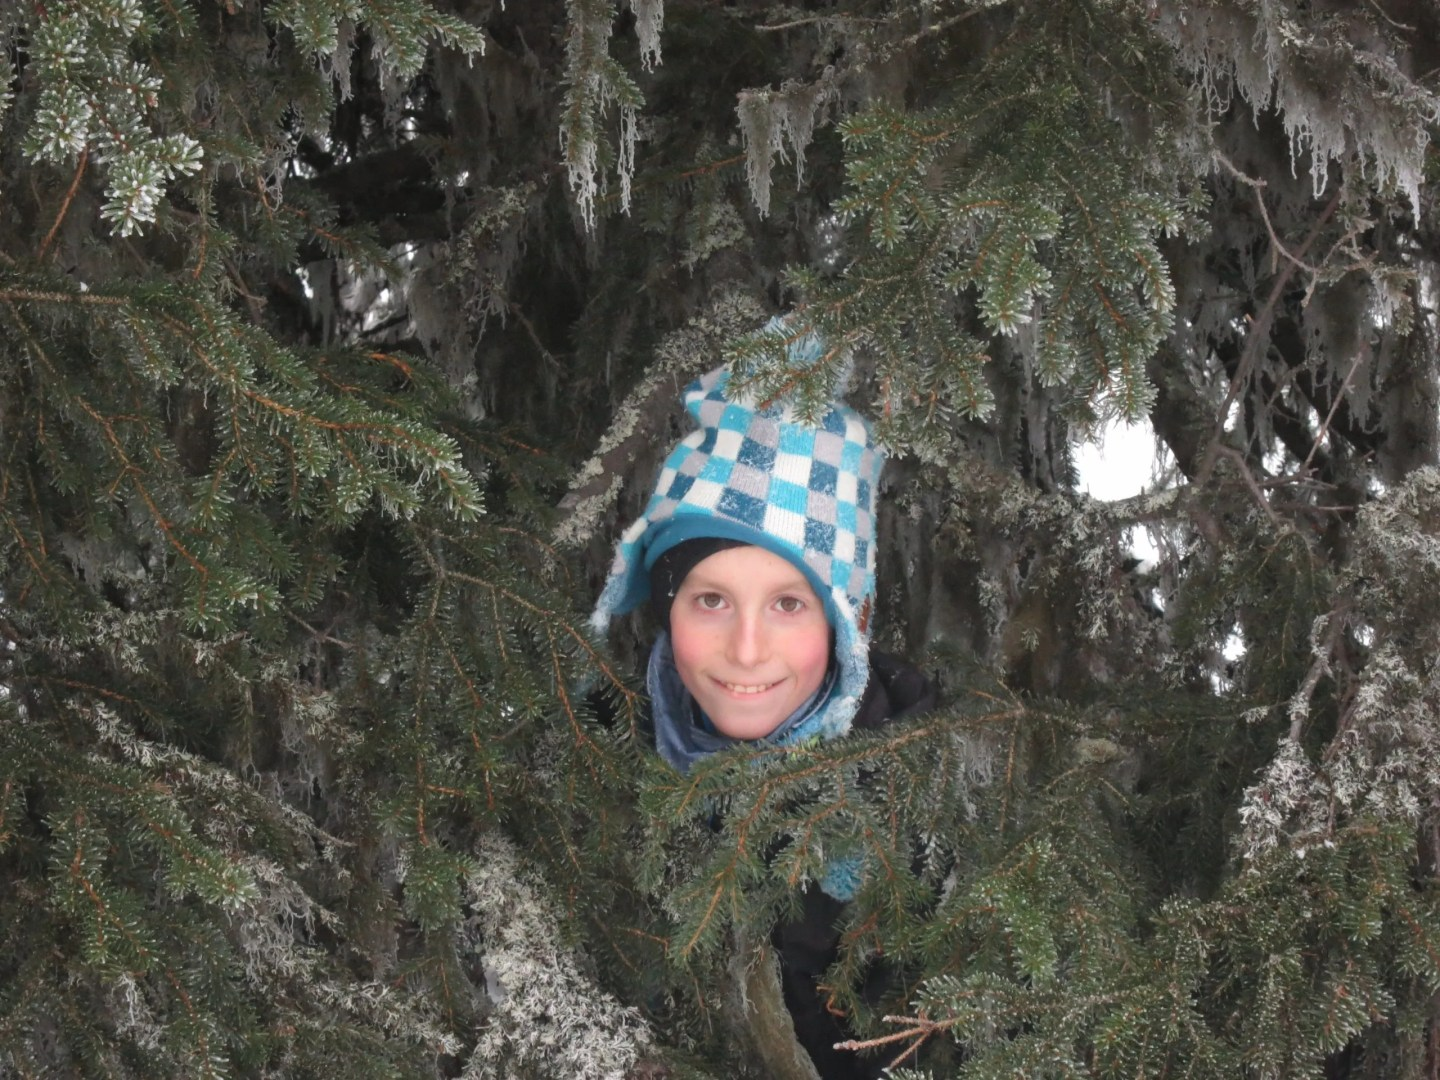 Jake in a tree